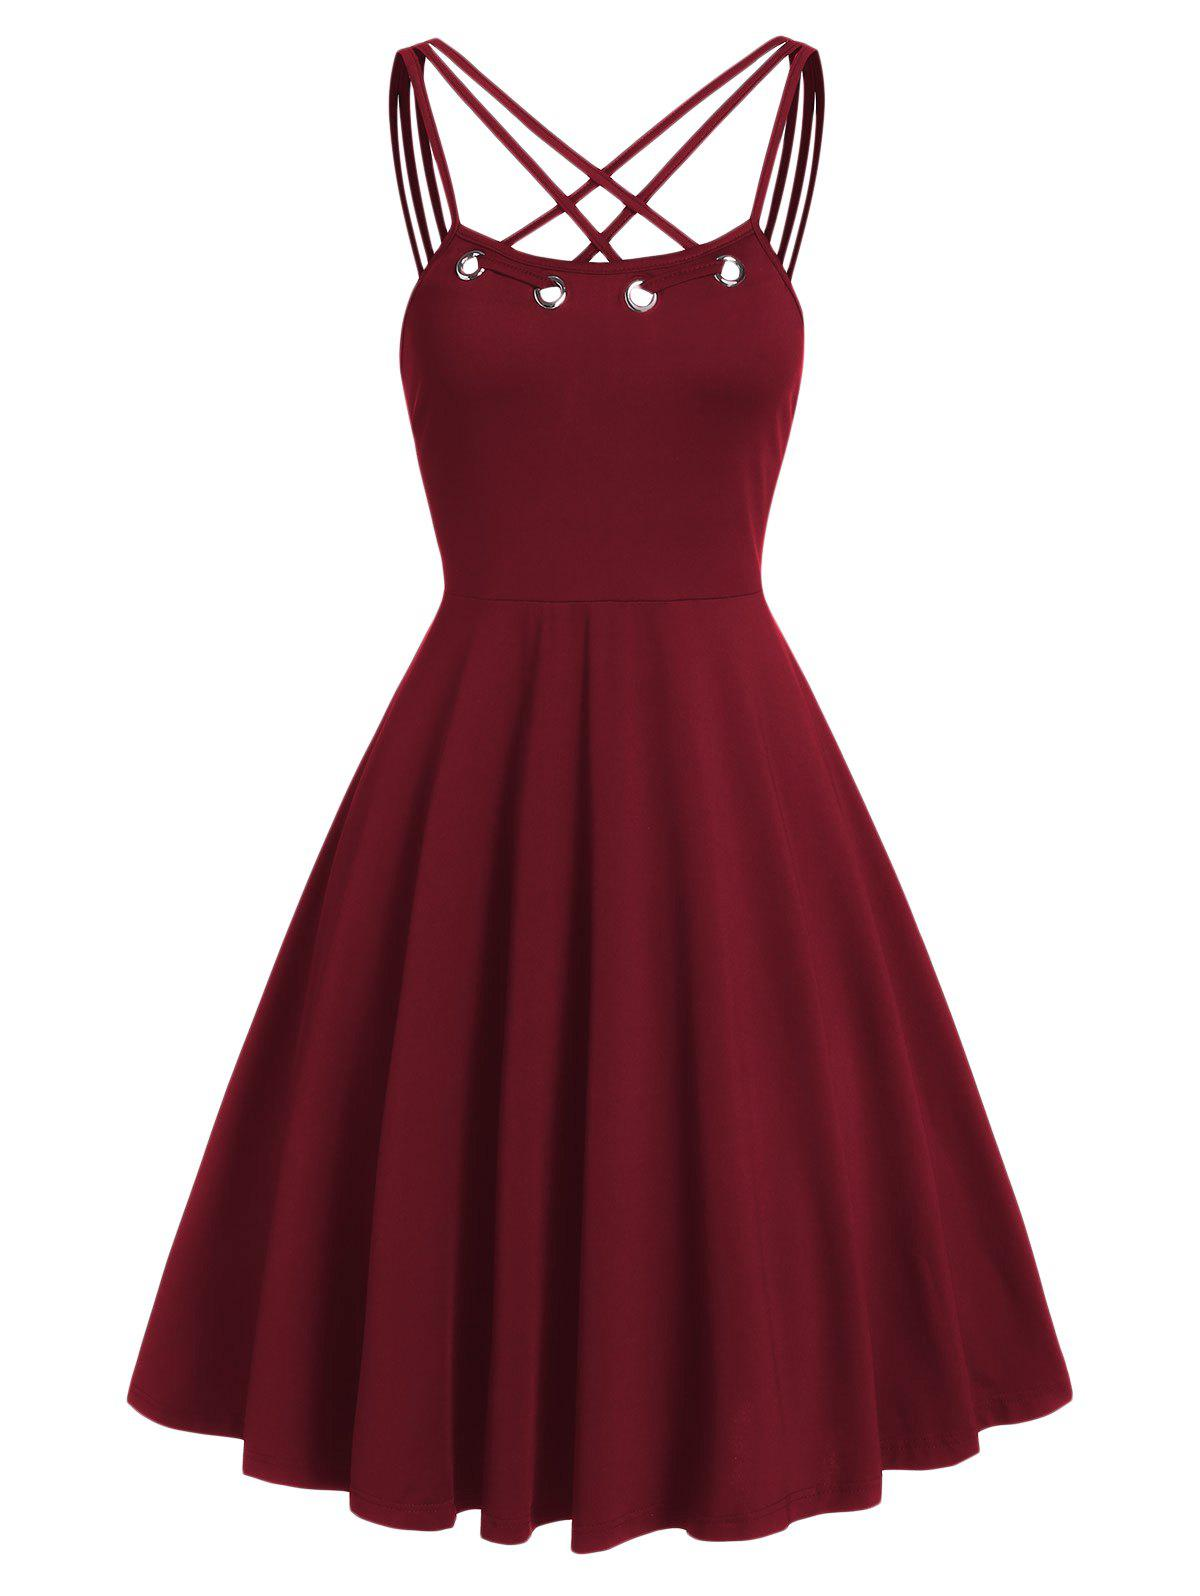 Strap Collar Fit And Flare Dress - RED WINE 2XL